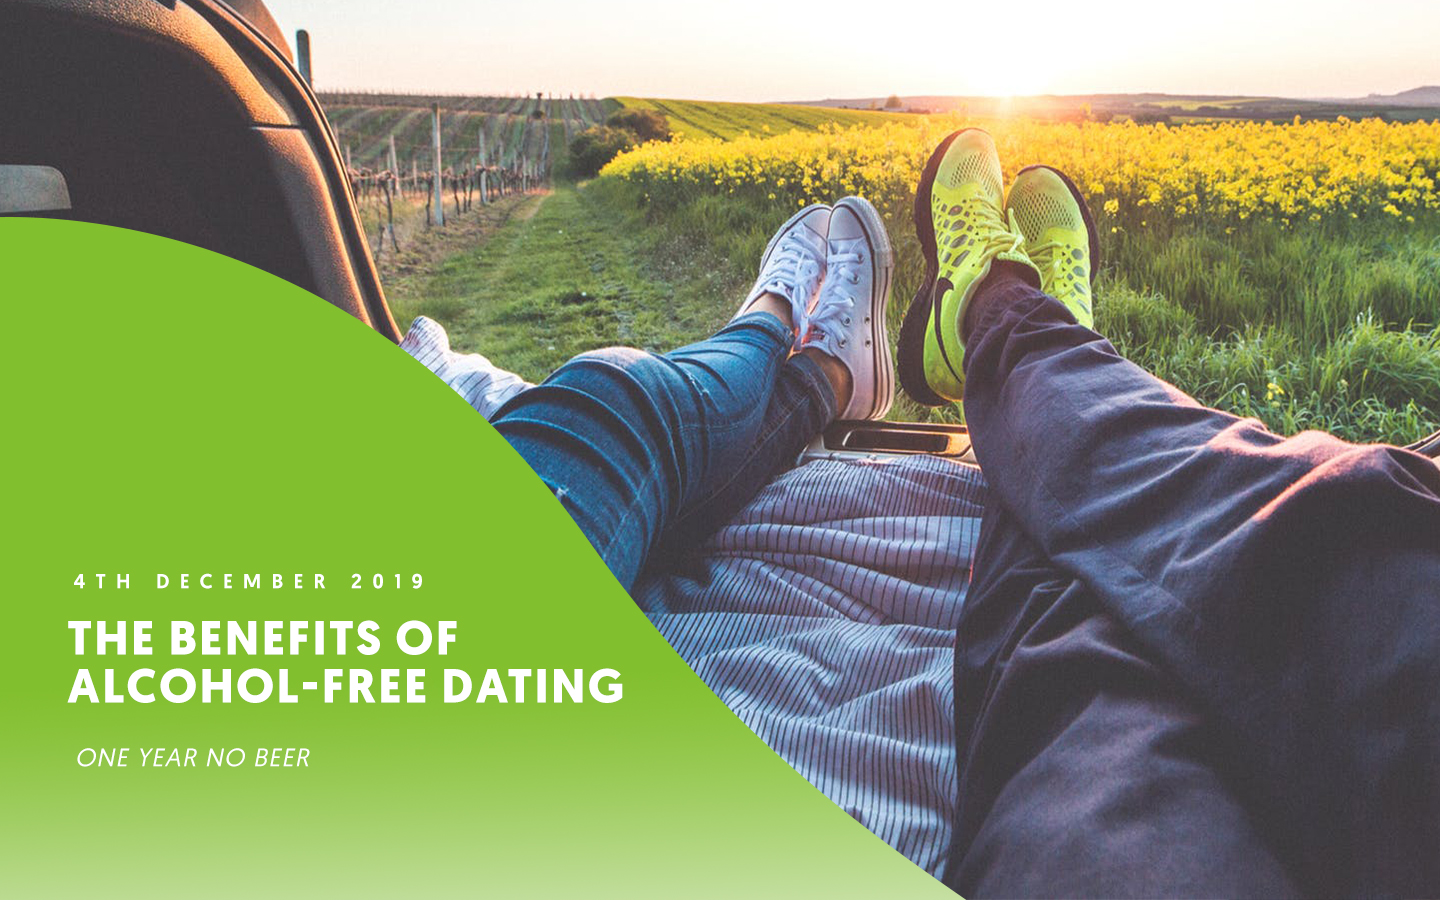 The benefits of alcohol-free dating